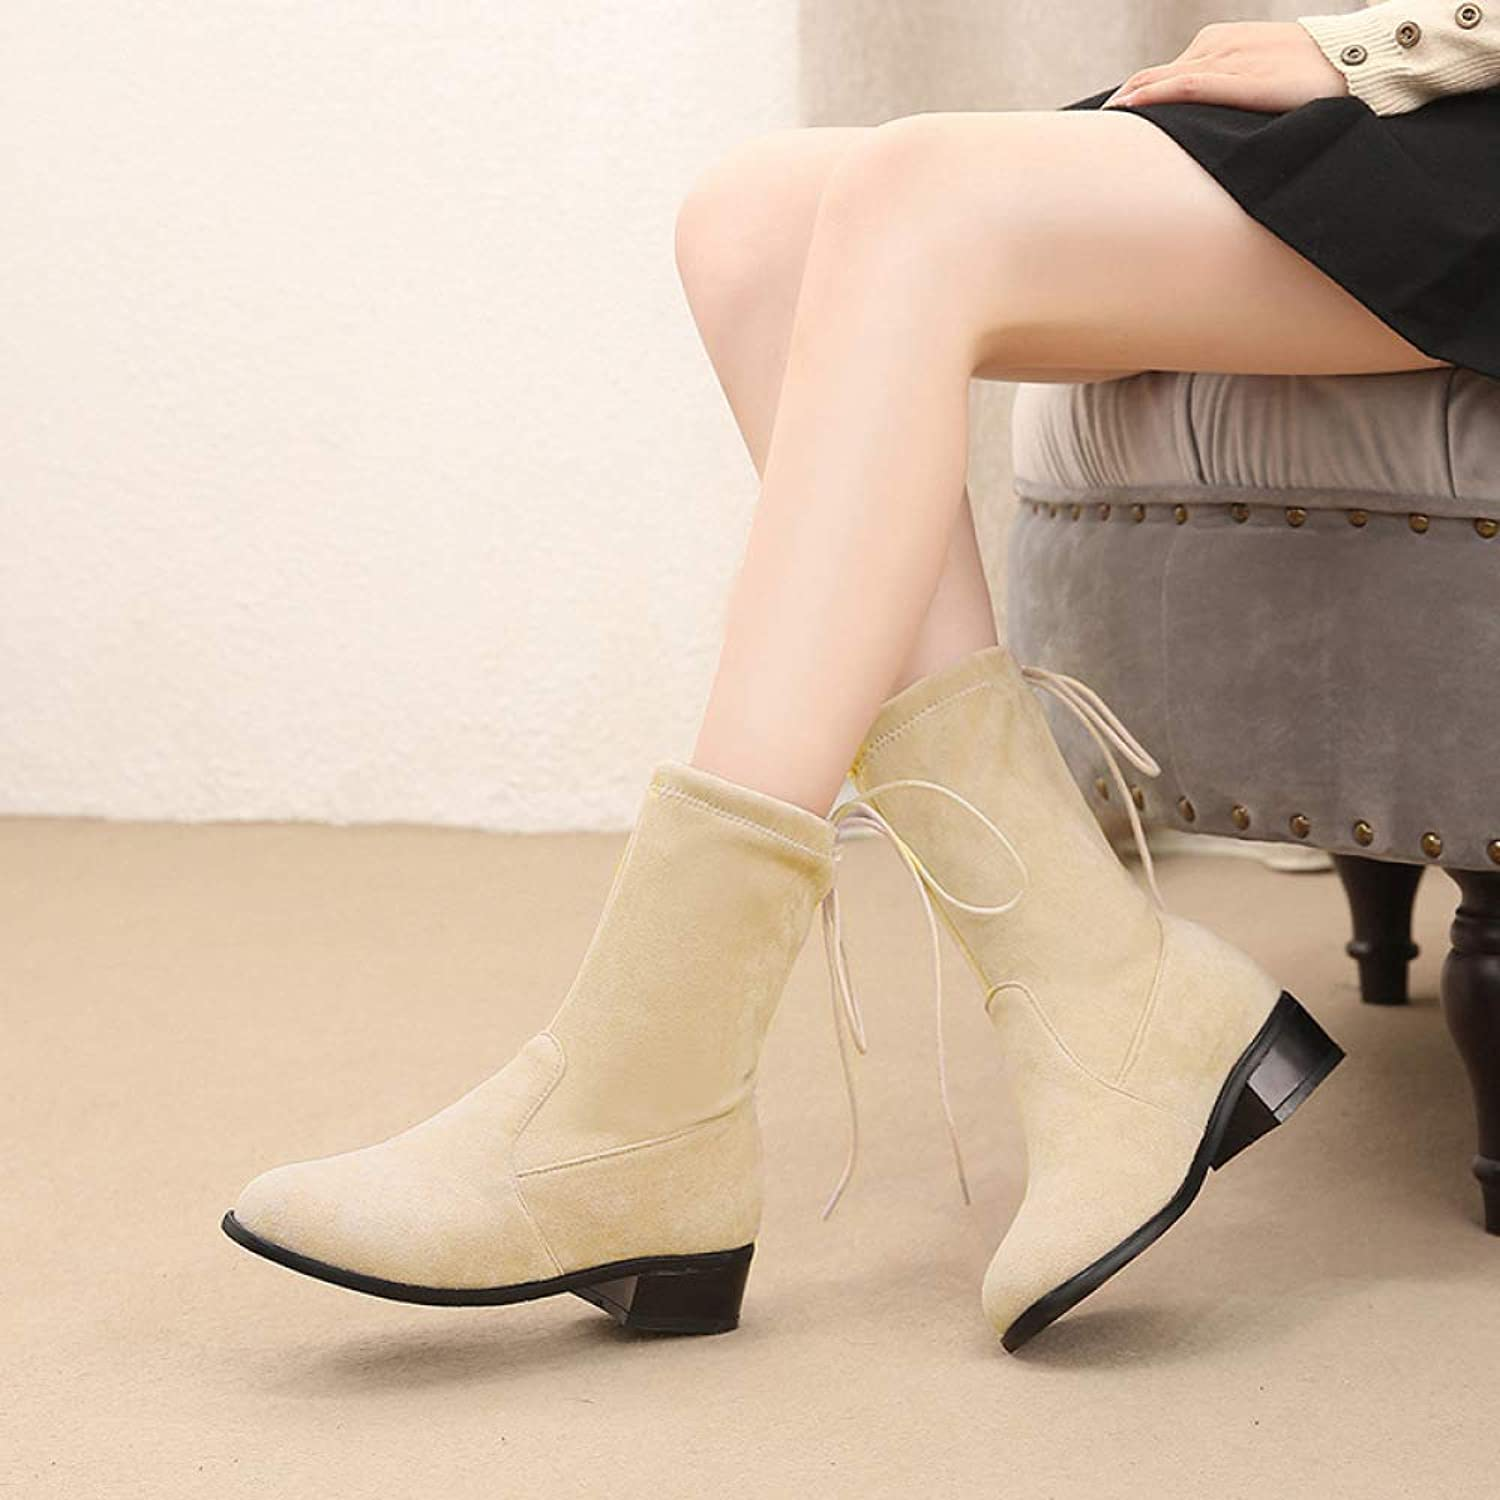 Boots for Women, Square with Heel Short and Bare Boots, Elastic Warm Boots